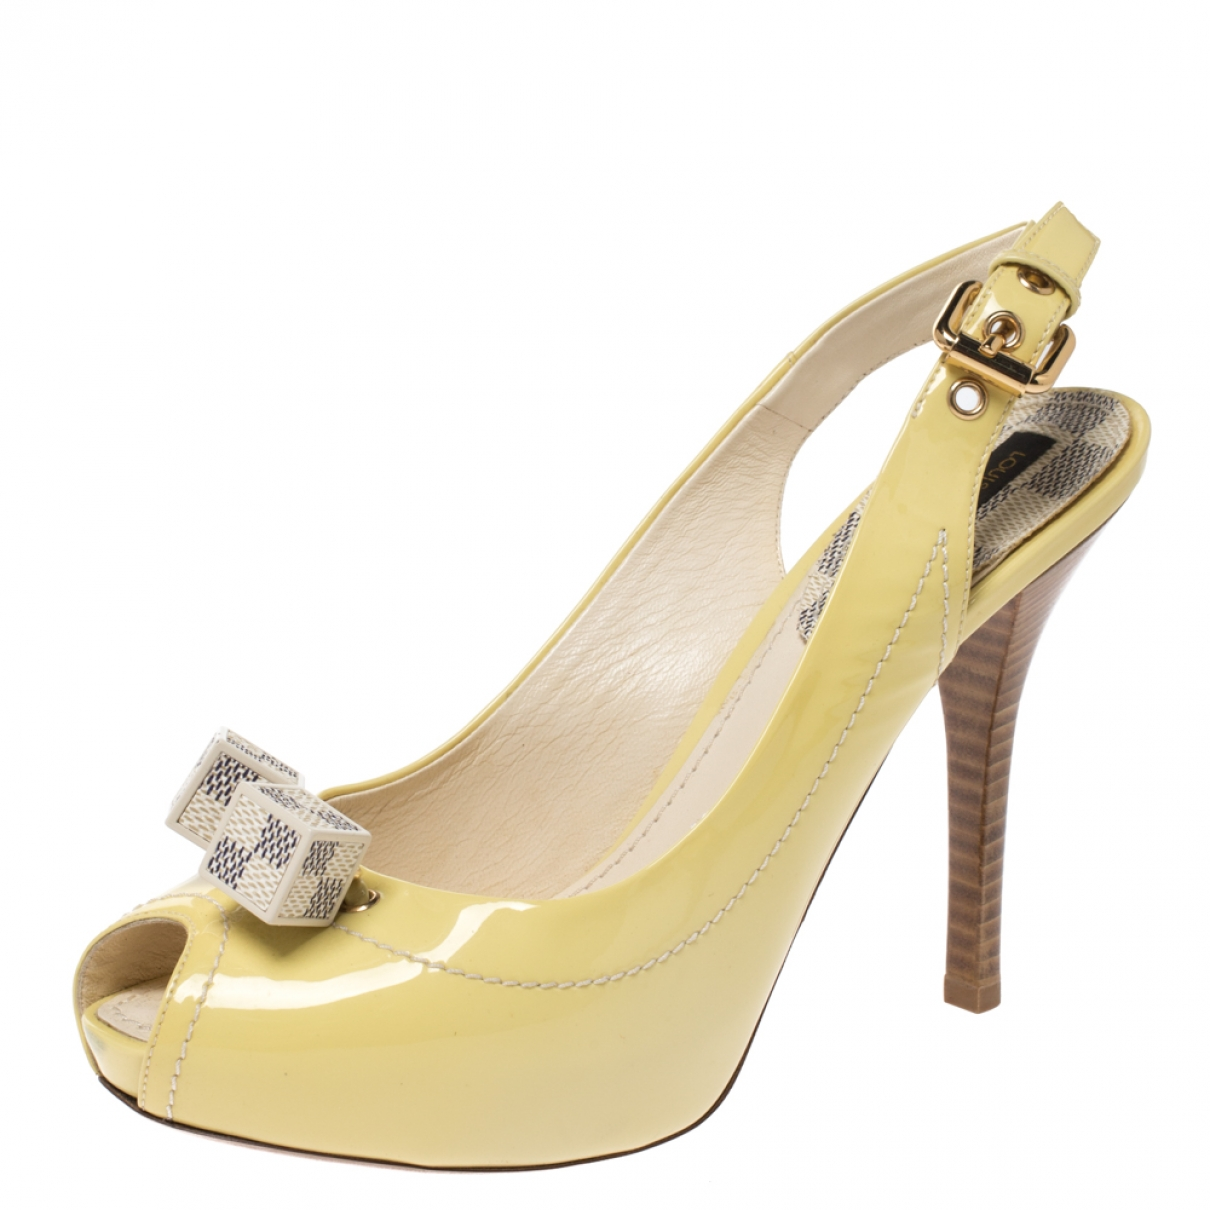 Louis Vuitton \N Yellow Patent leather Sandals for Women 5 US